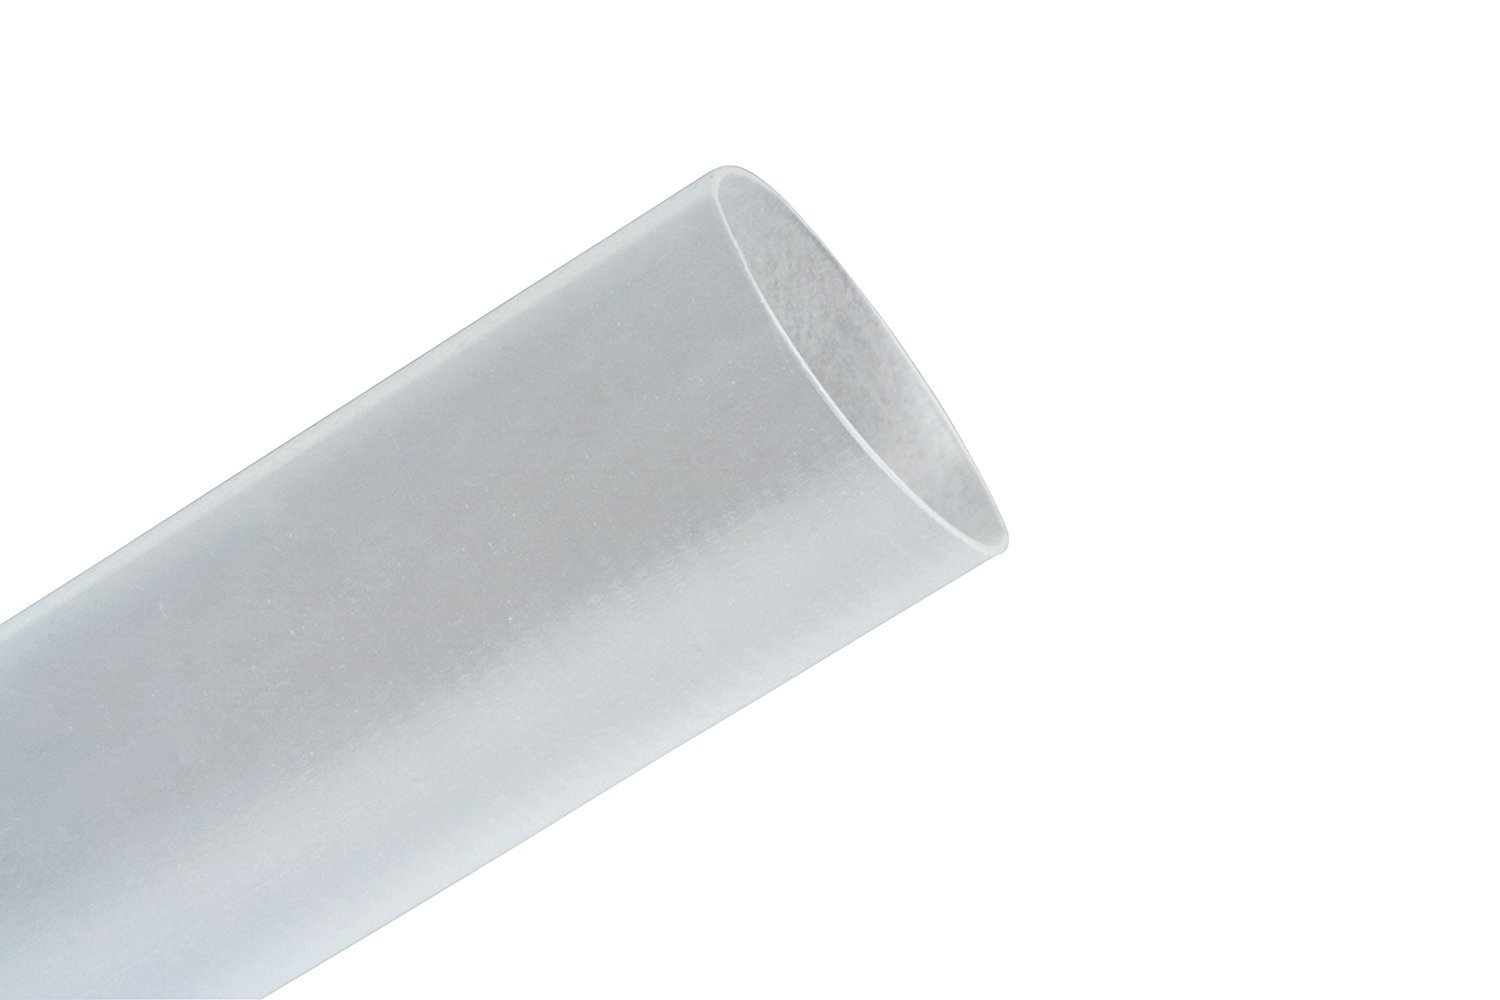 3M Clear Polyolefin Heat Shrink Tubing - 200 ft Length - 2:1 Shrink Ratio - +212 F Shrink Temp - FP301-1/2-200'-Clear-Spool [PRICE is per SPOOL]